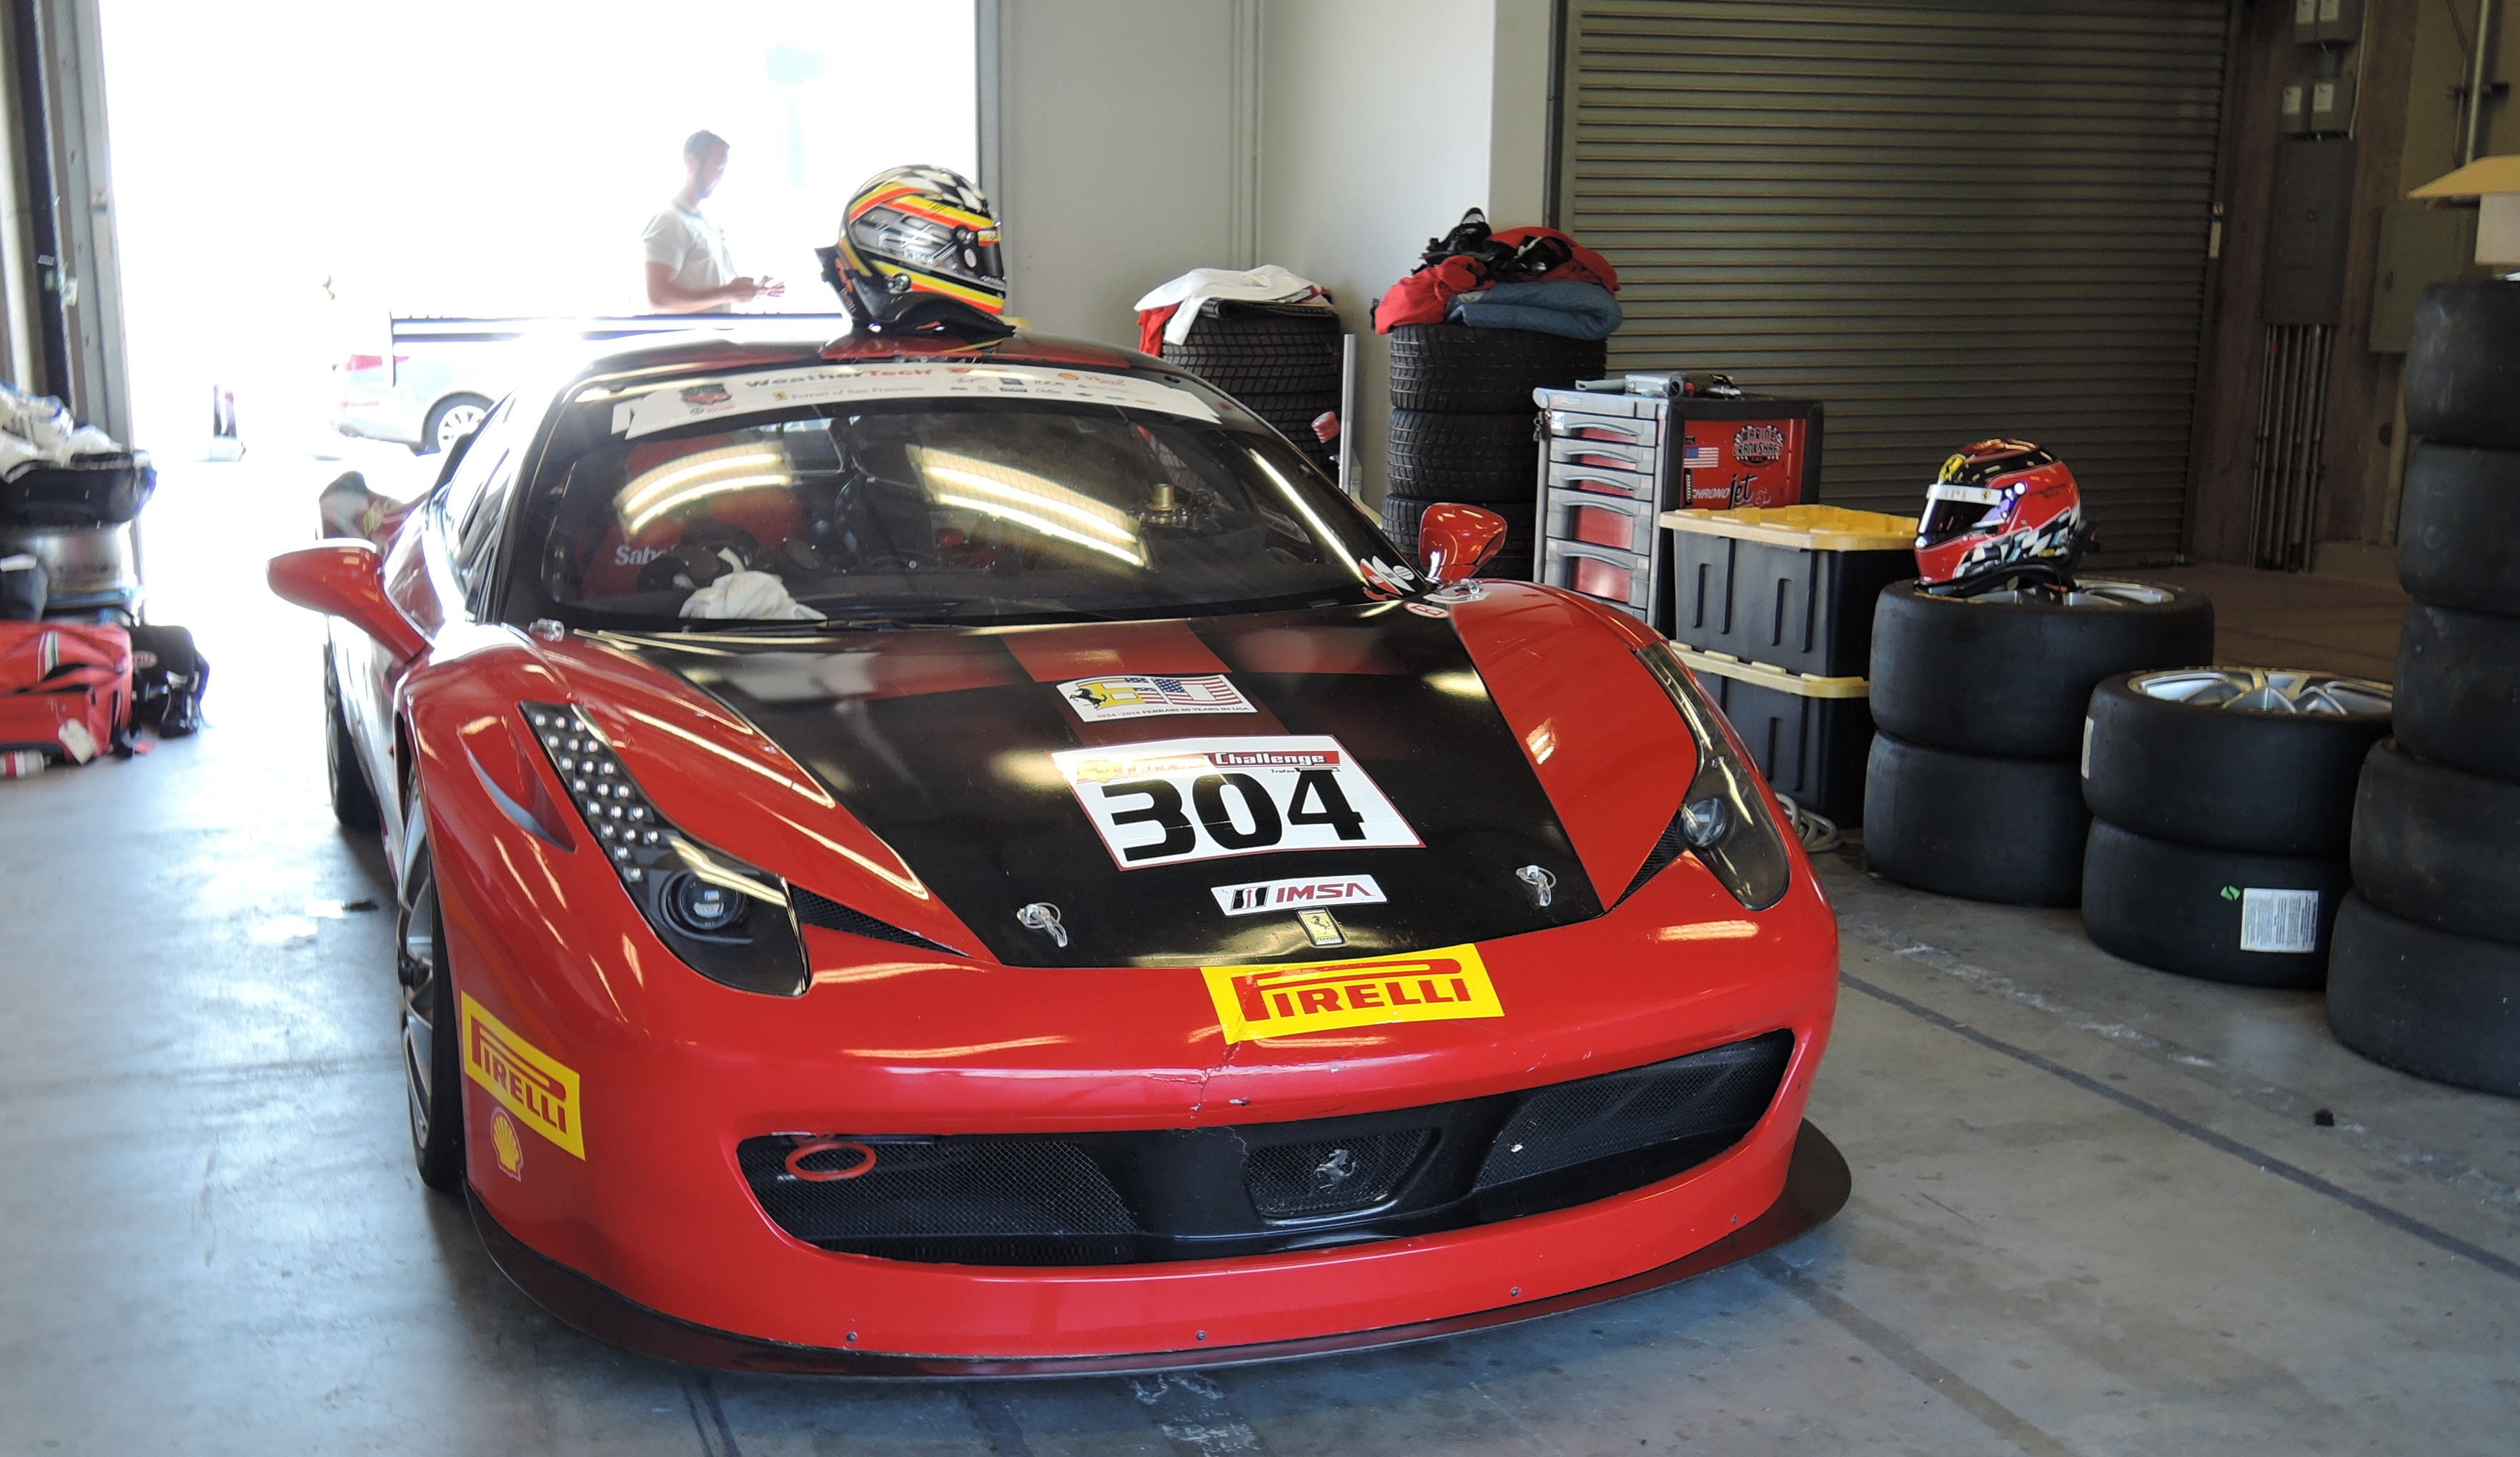 red 458 Challenge car - ferraric club at laguna seca